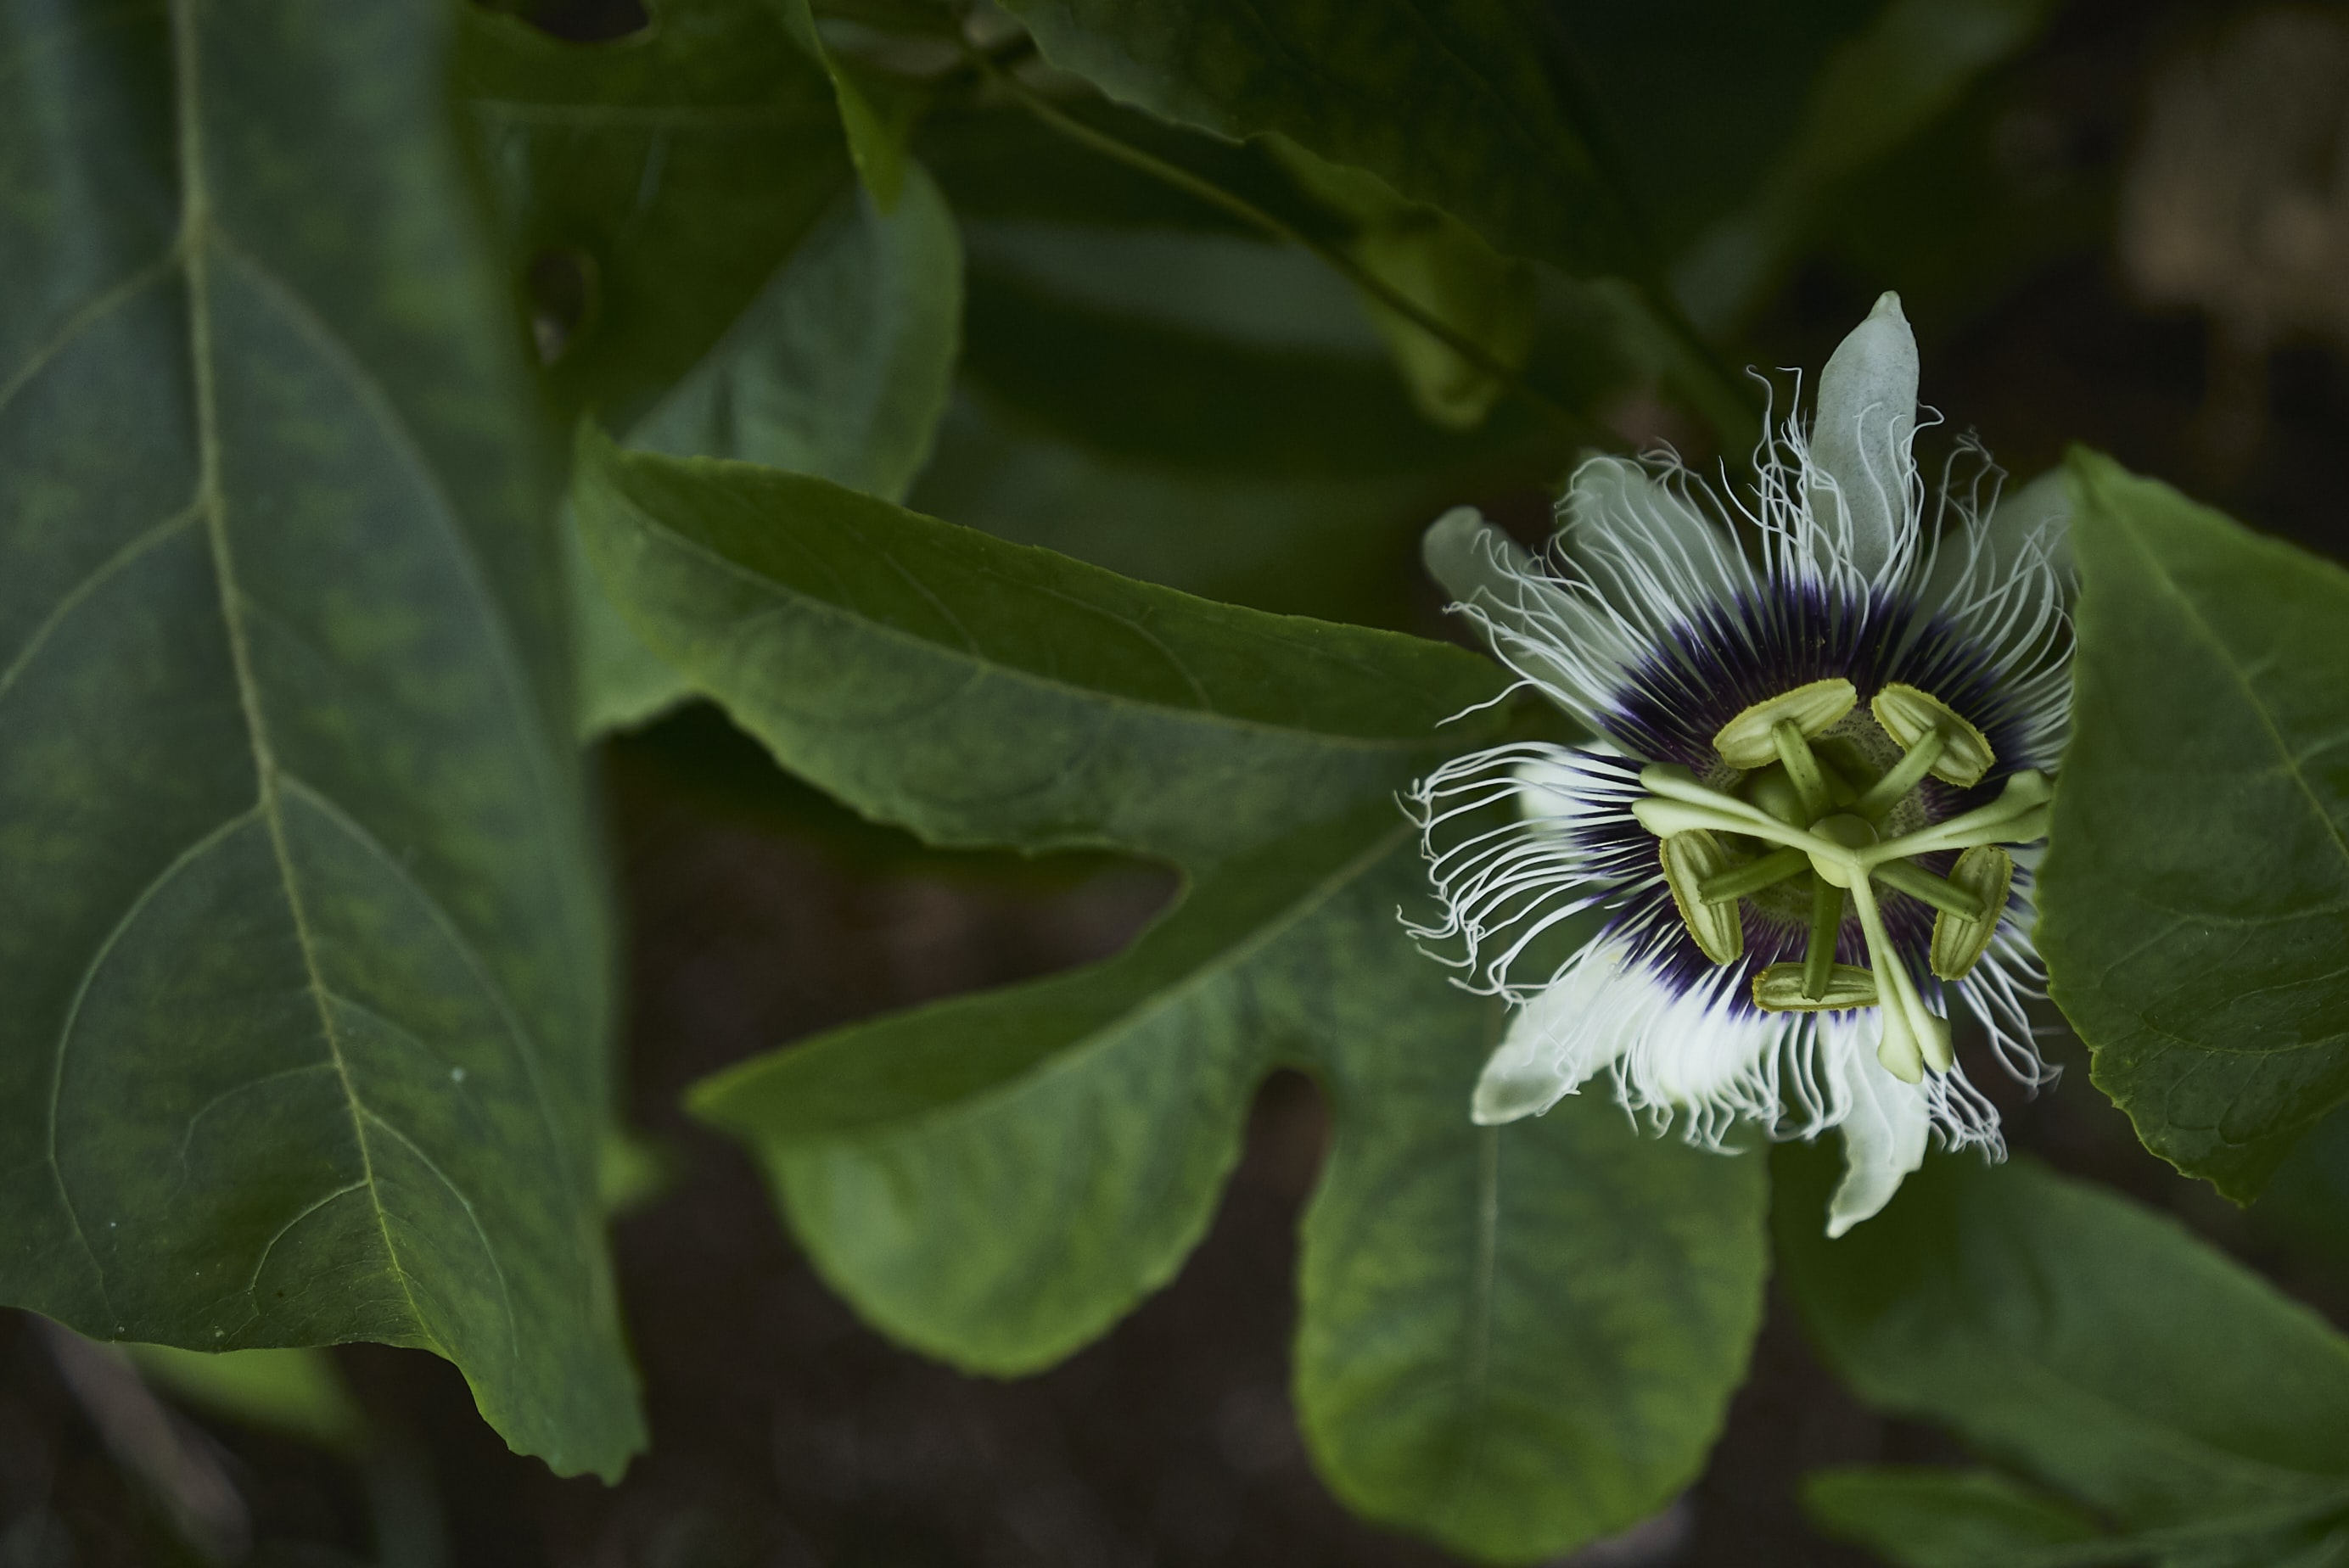 white and green flower in shallow focus lens